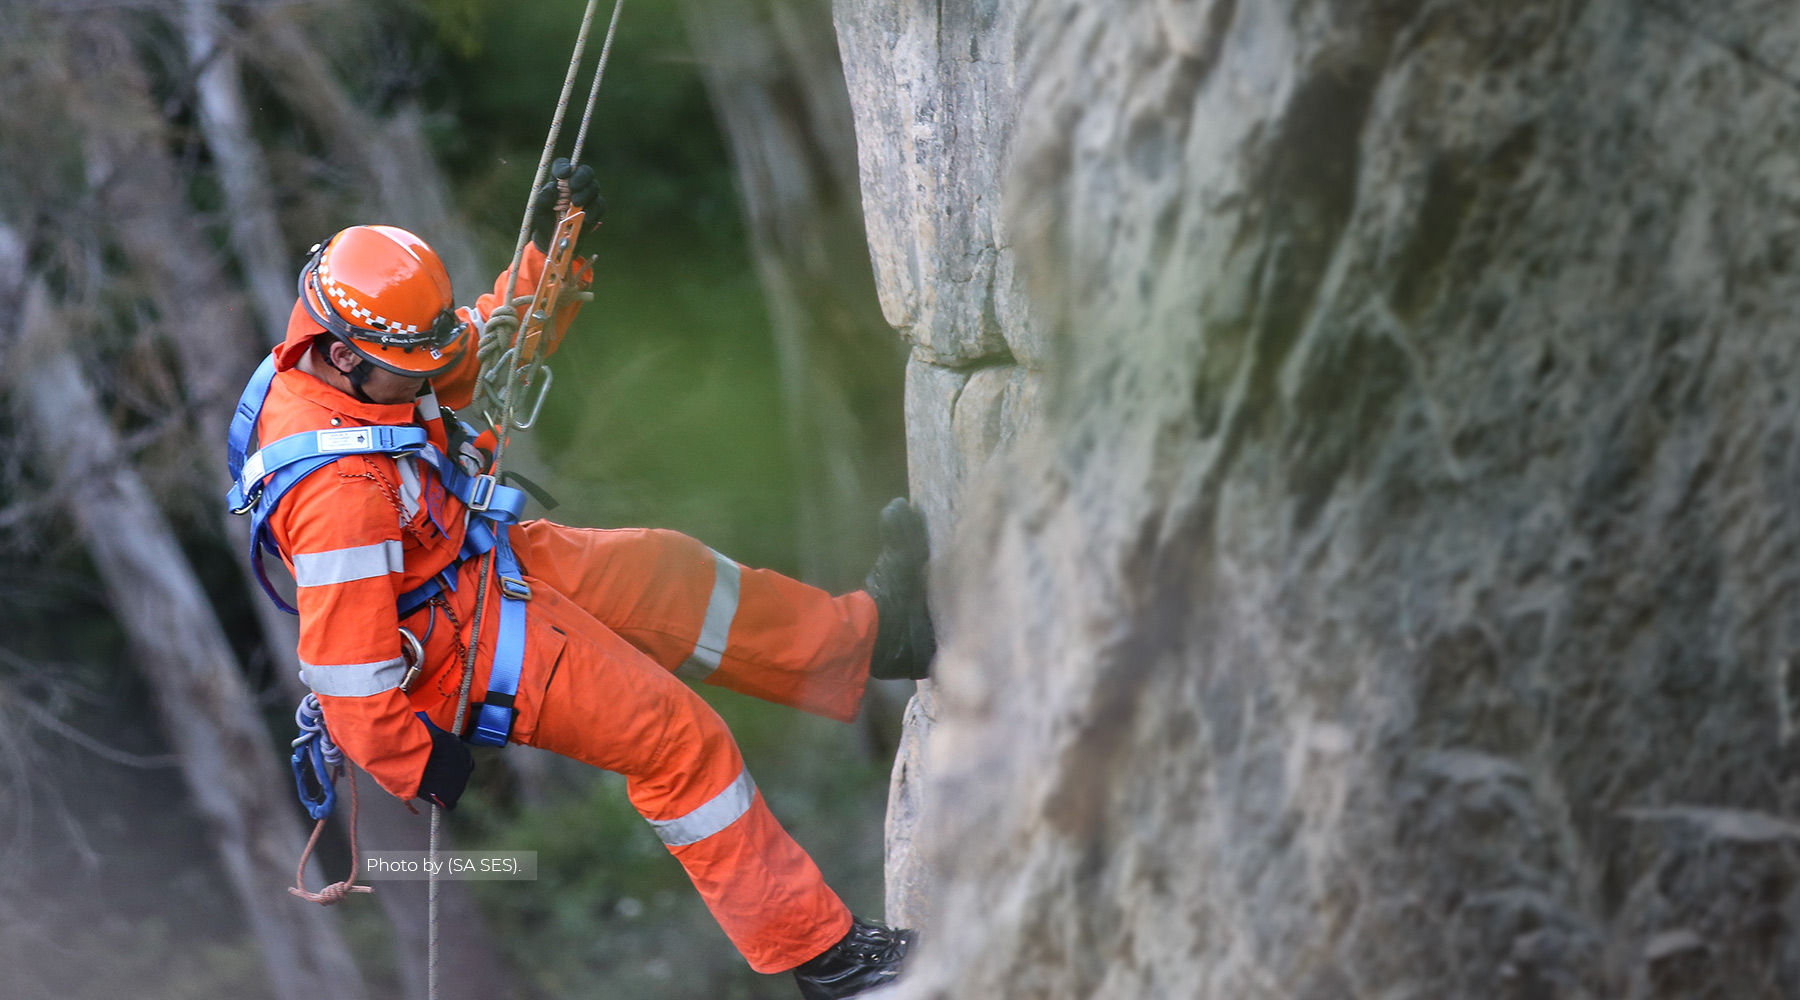 Man in orange uniform climbing a mountain